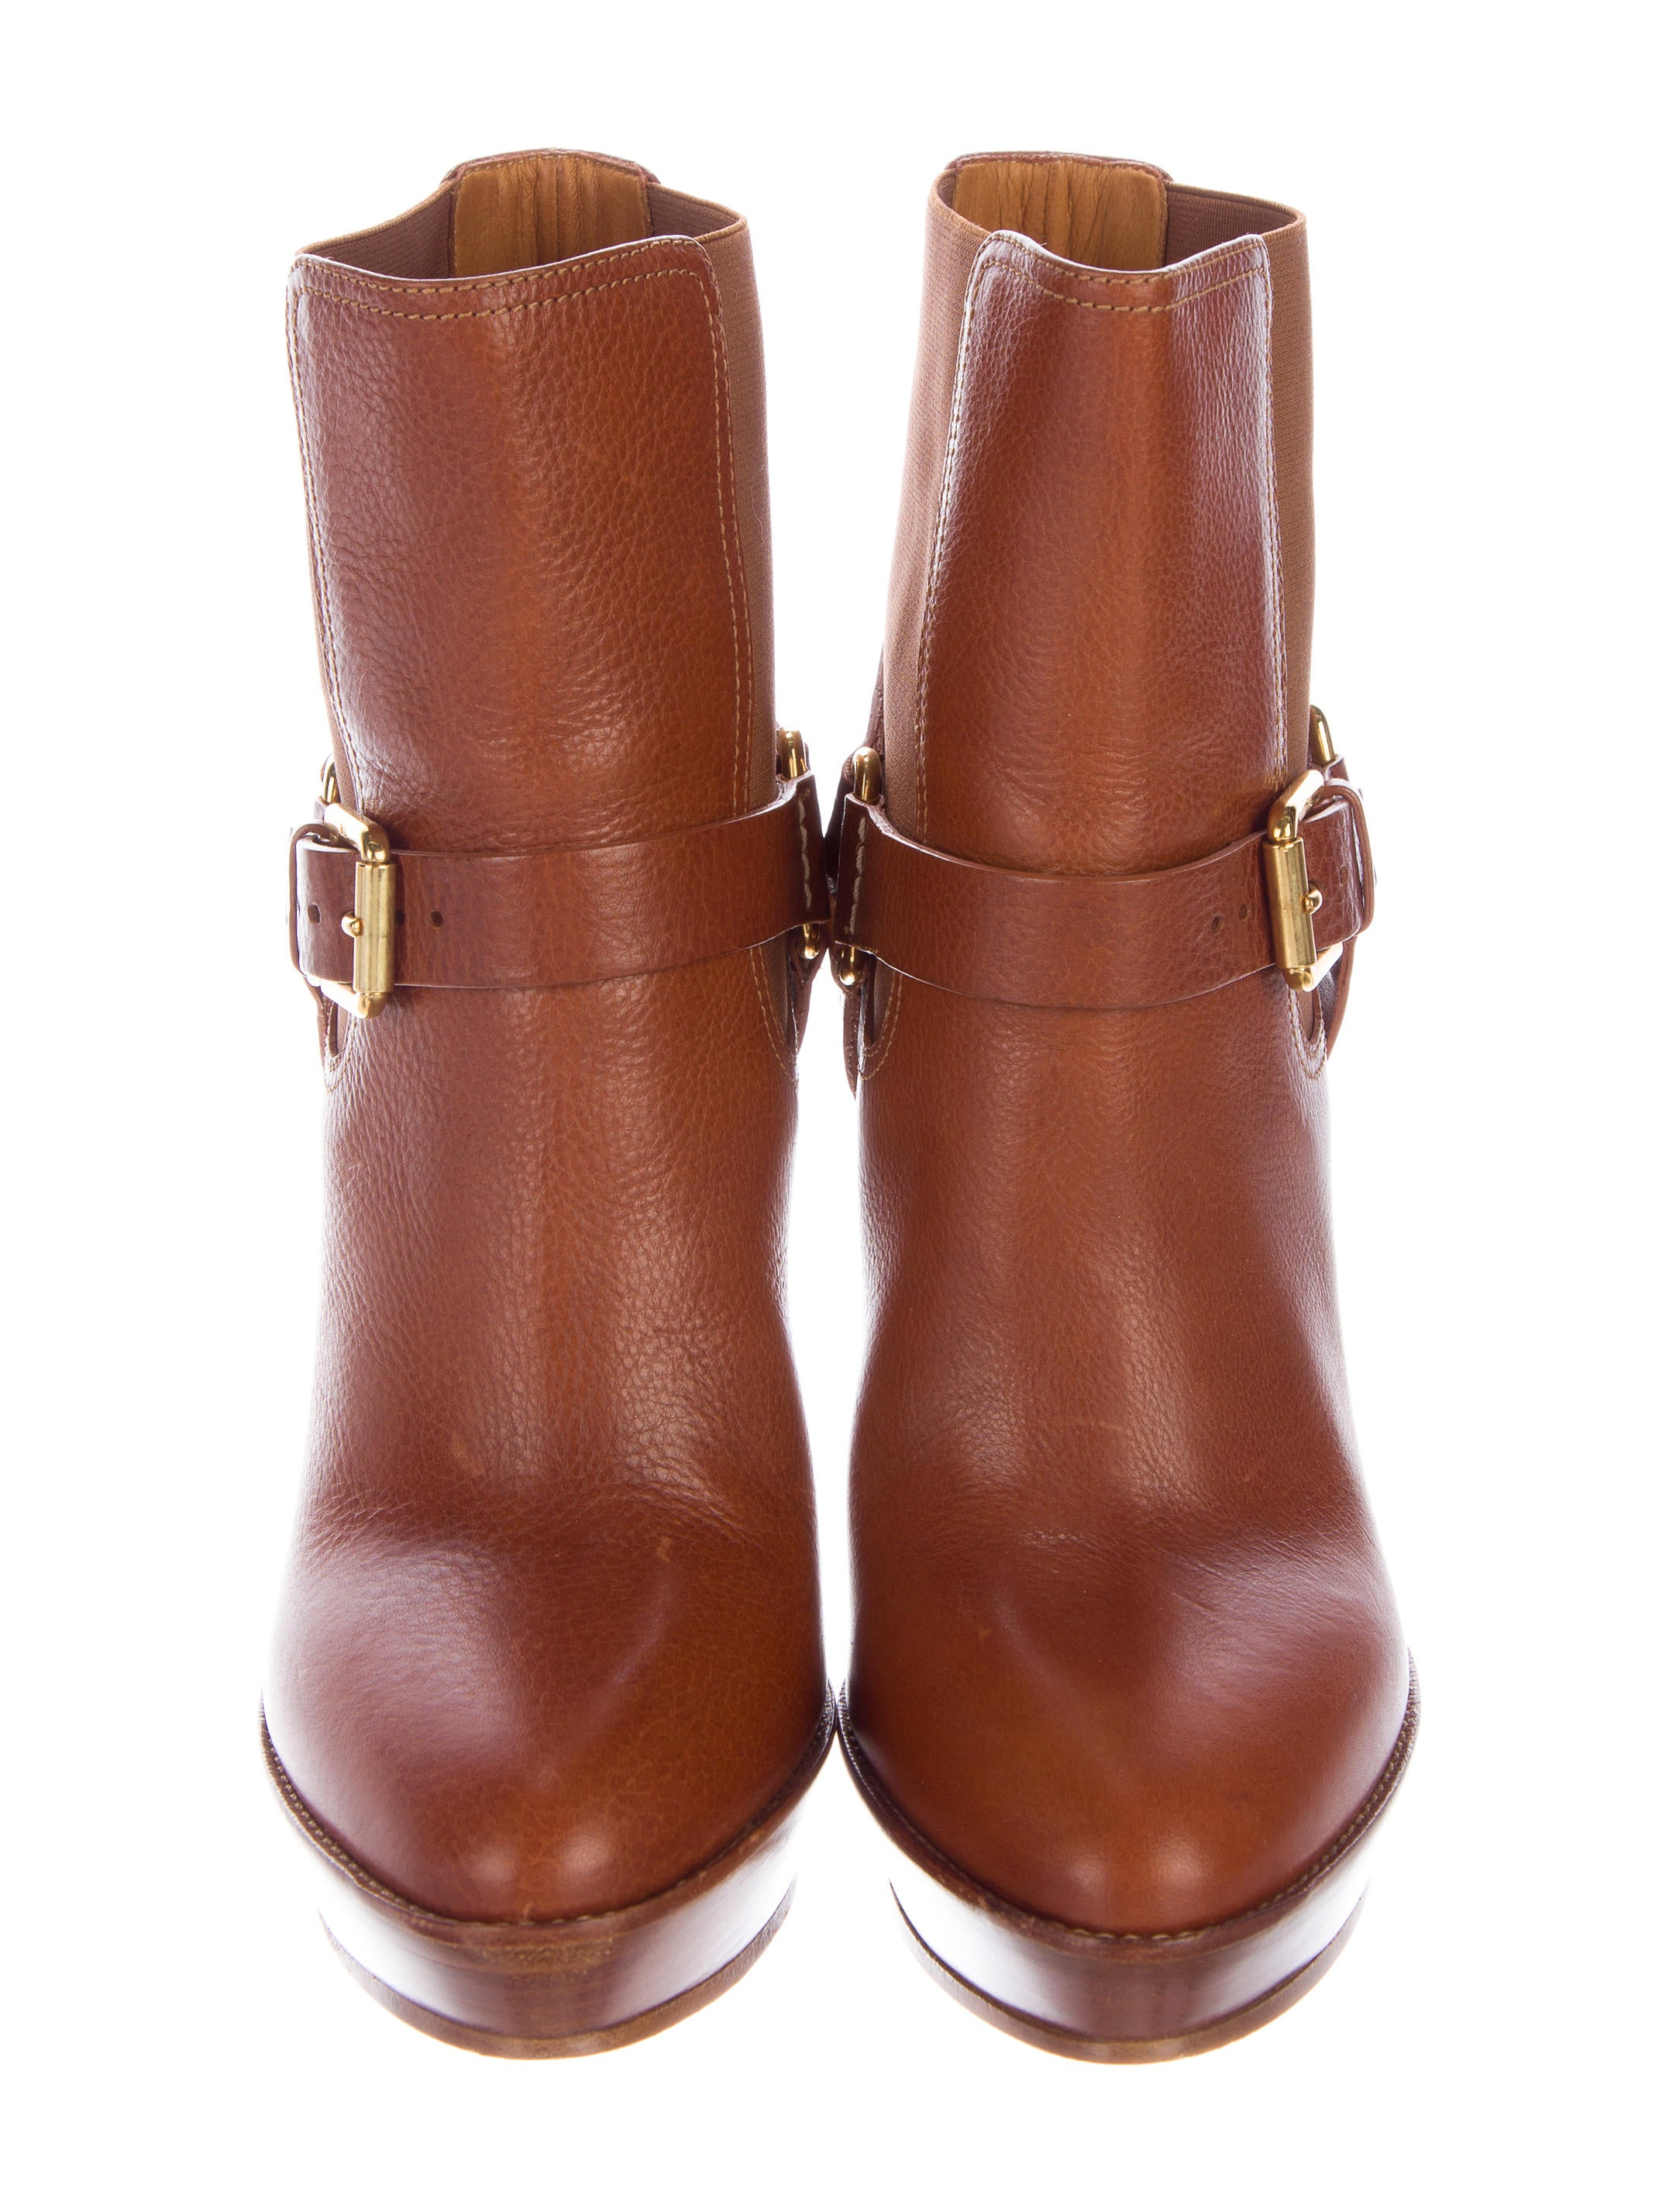 An examples of these would be tall cowboy boots; these can also be found in many popular styles, such as fringe boots or versatile black boots. Heels are another shoe that can't be overlooked. This season touts platform heels as the go-to look for adding height and length to the leg.